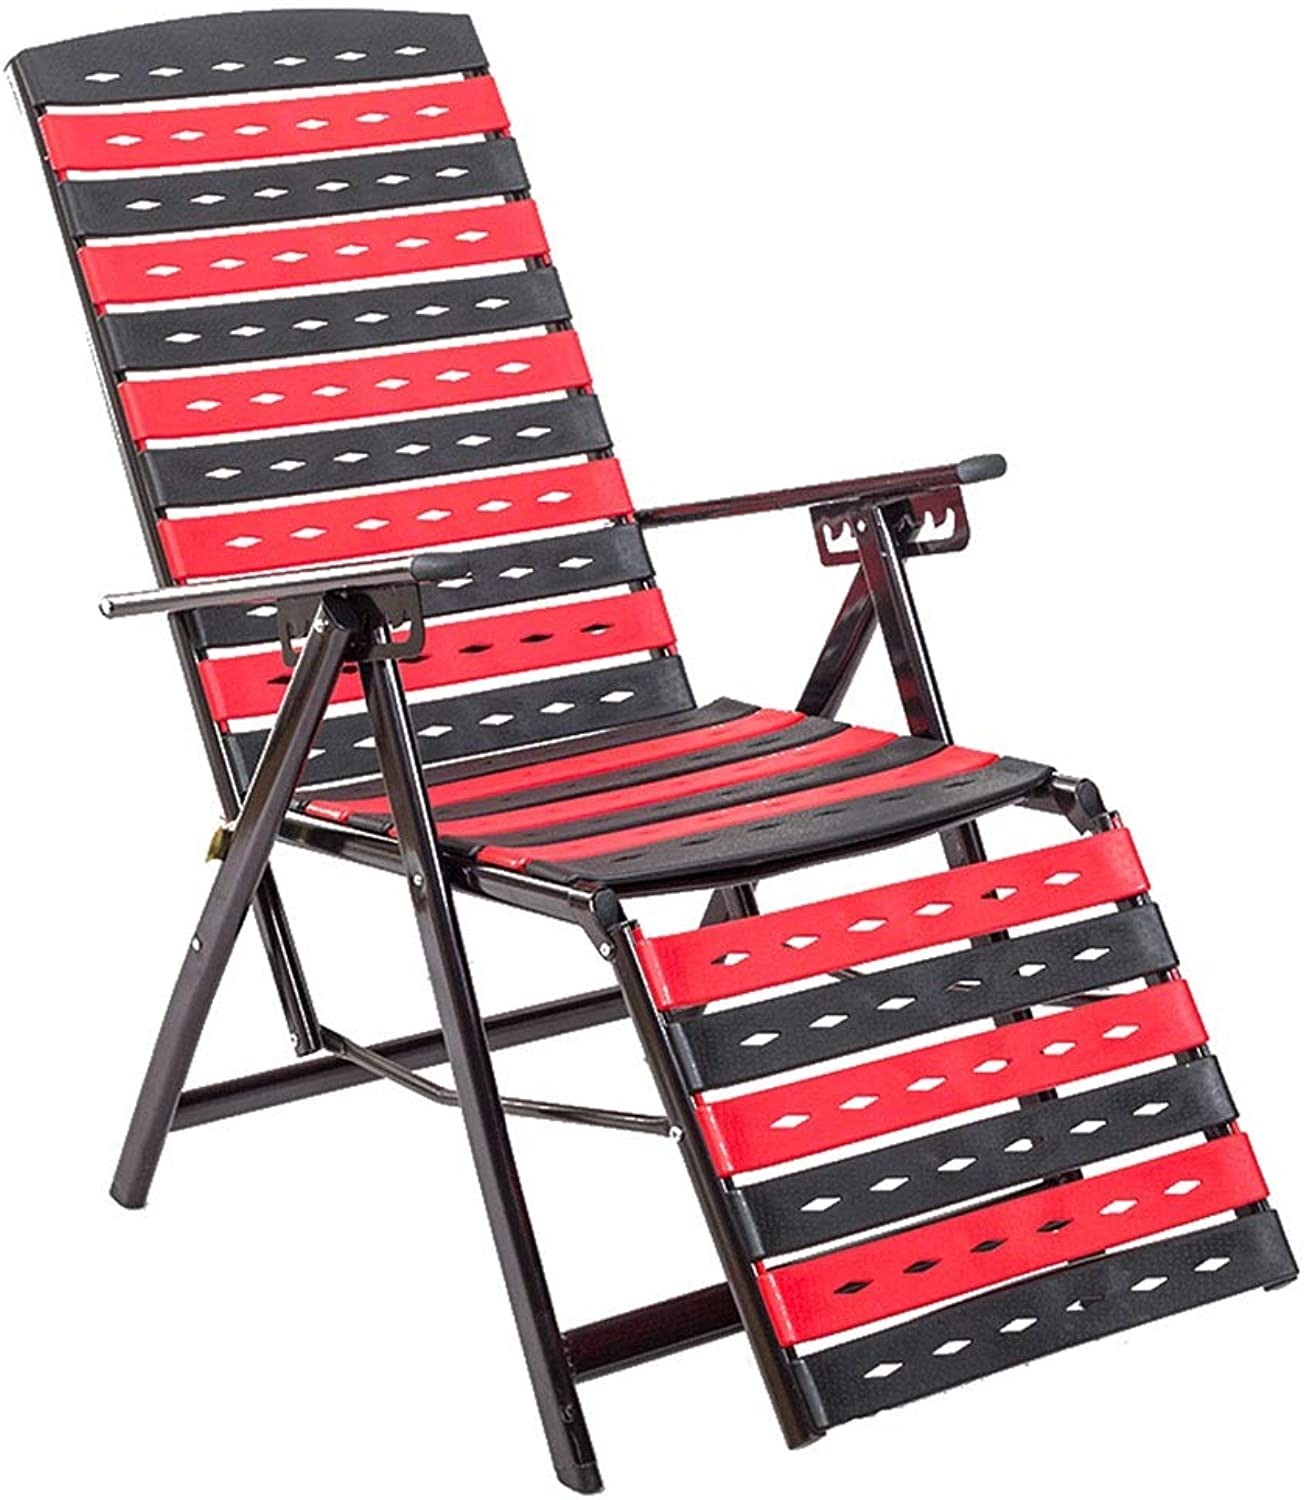 Recliners Sun Lounger Garden Chair Office Lunch Break Chair Outdoor Portable Camp Bed Adjustable Recliner Home Balcony Chair Can Bear 150 Kg (color   Red, Size   50  109cm)